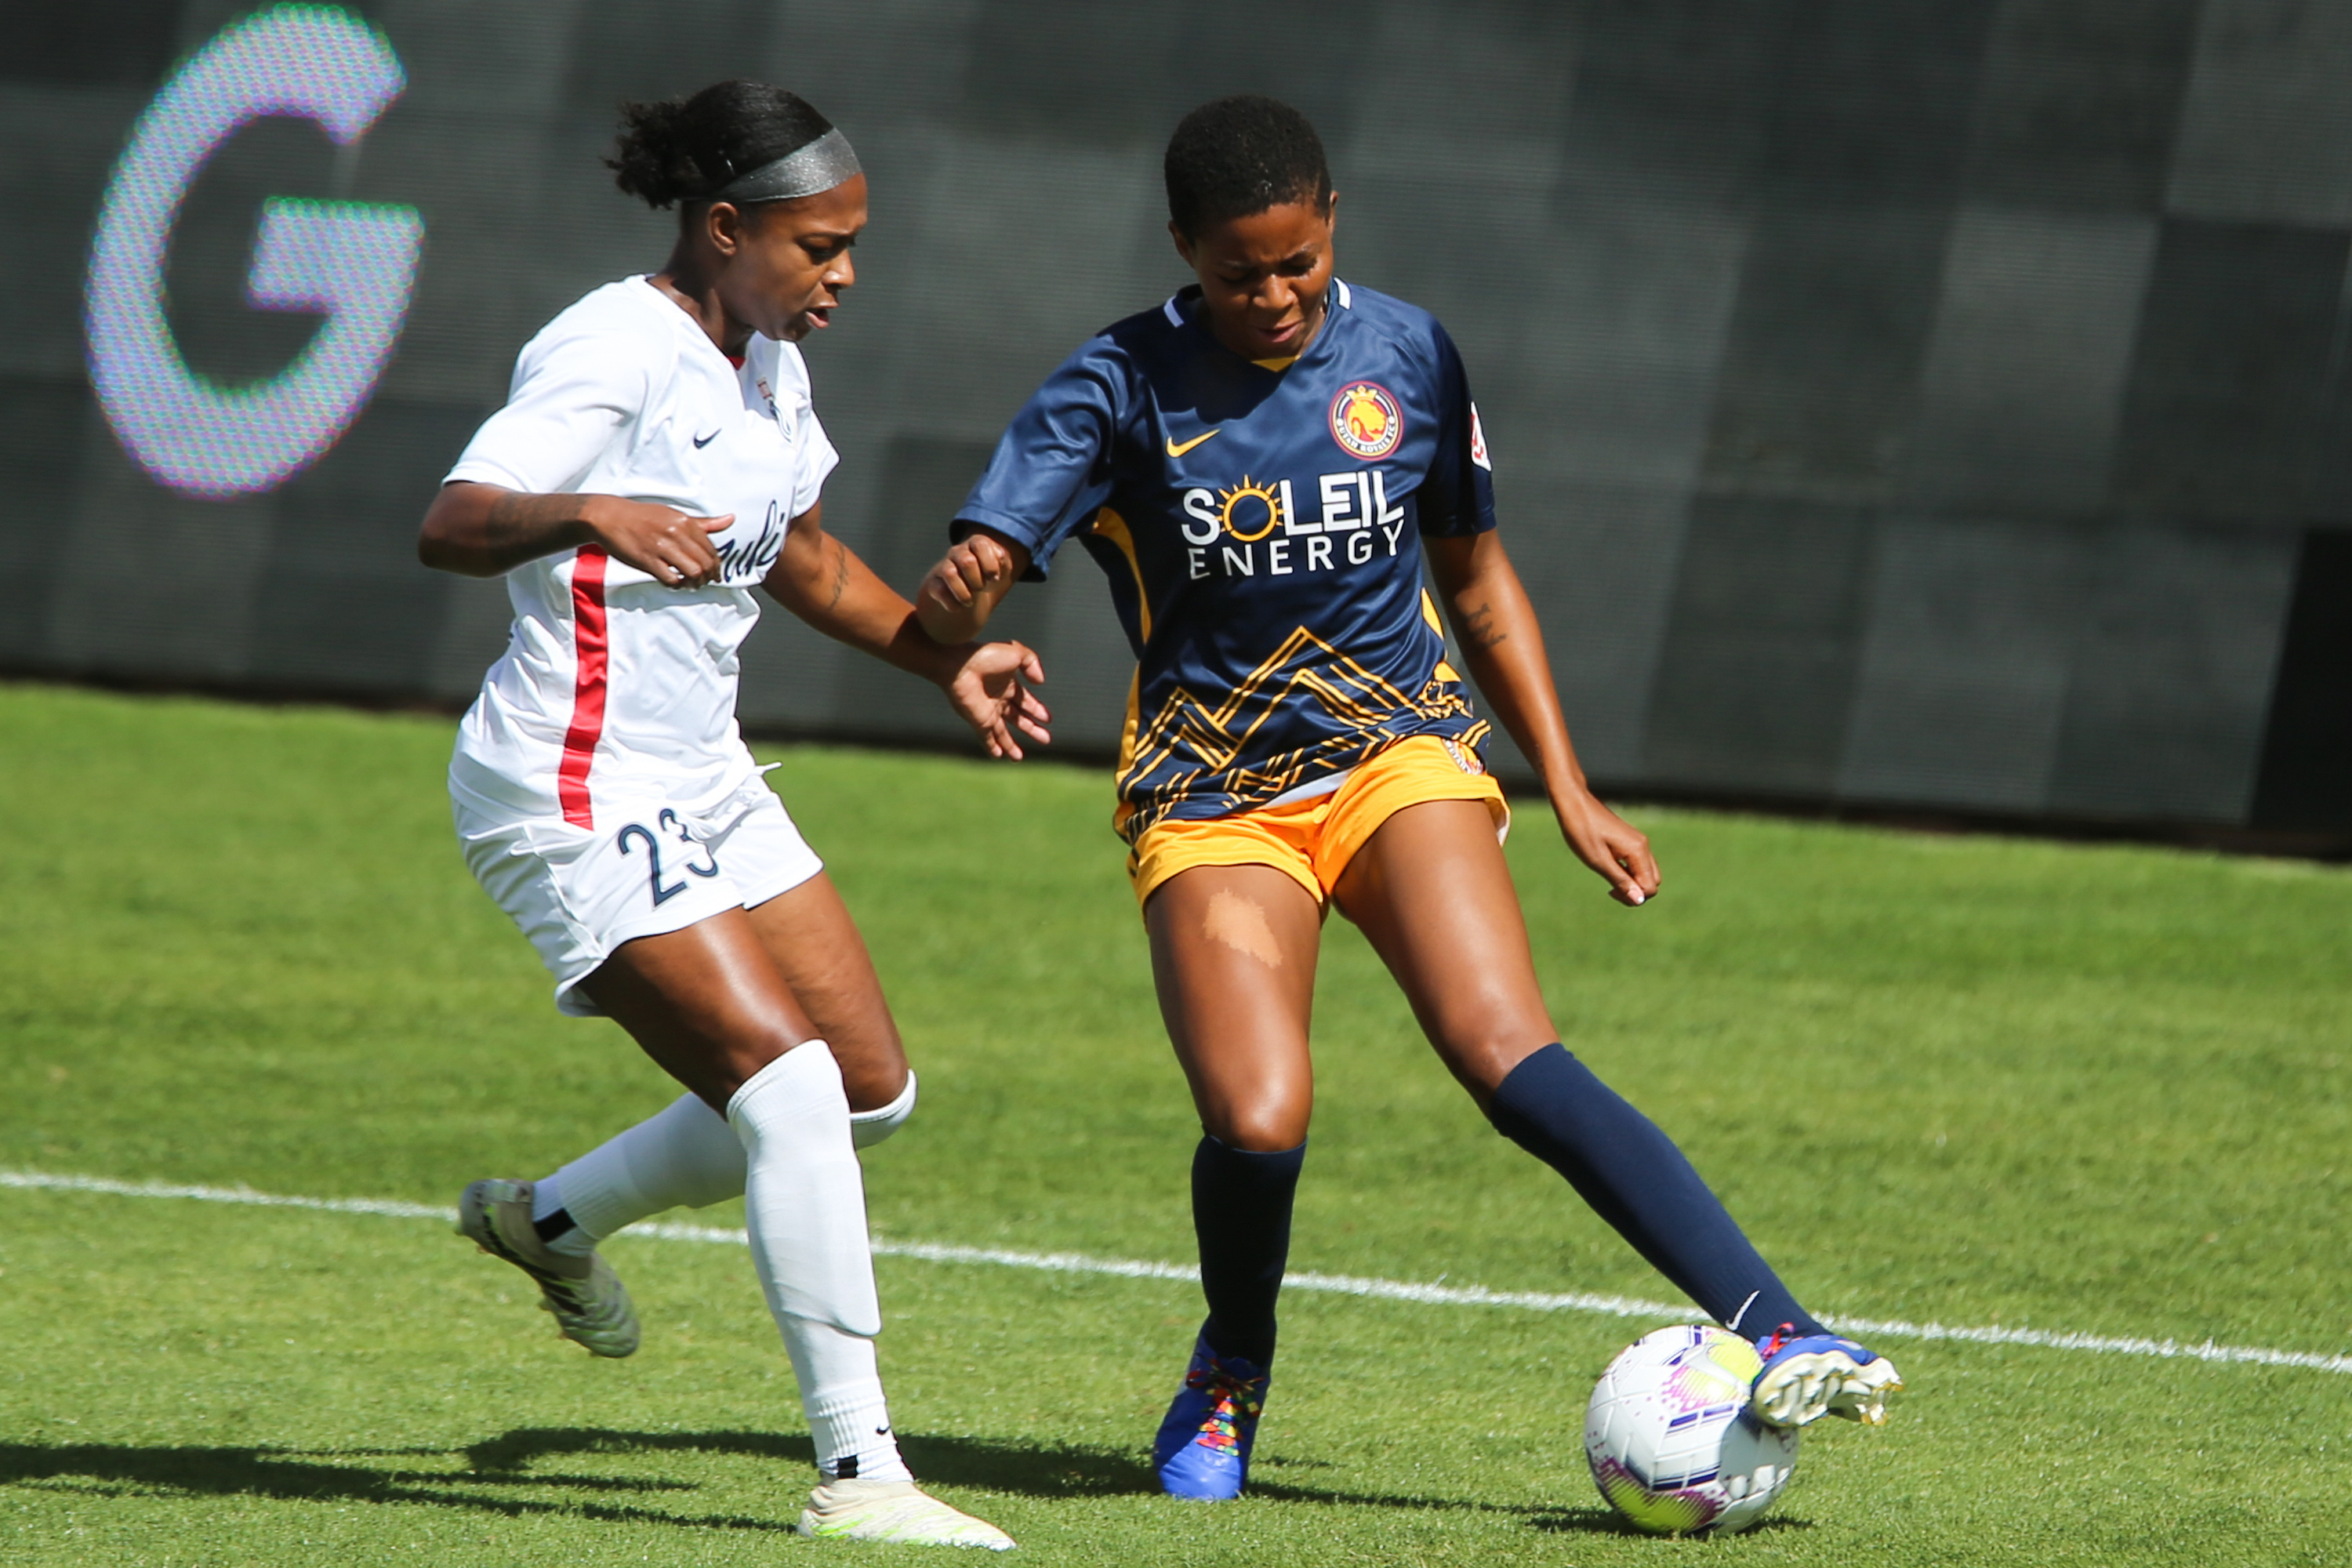 Utah Royals FC defender Tziarra King (3) controls the ball against OL Reign FC defender Taylor Smith (23) during a NWSL soccer game at Rio Tinto Stadium in Sandy on Saturday, Sept. 26, 2020.